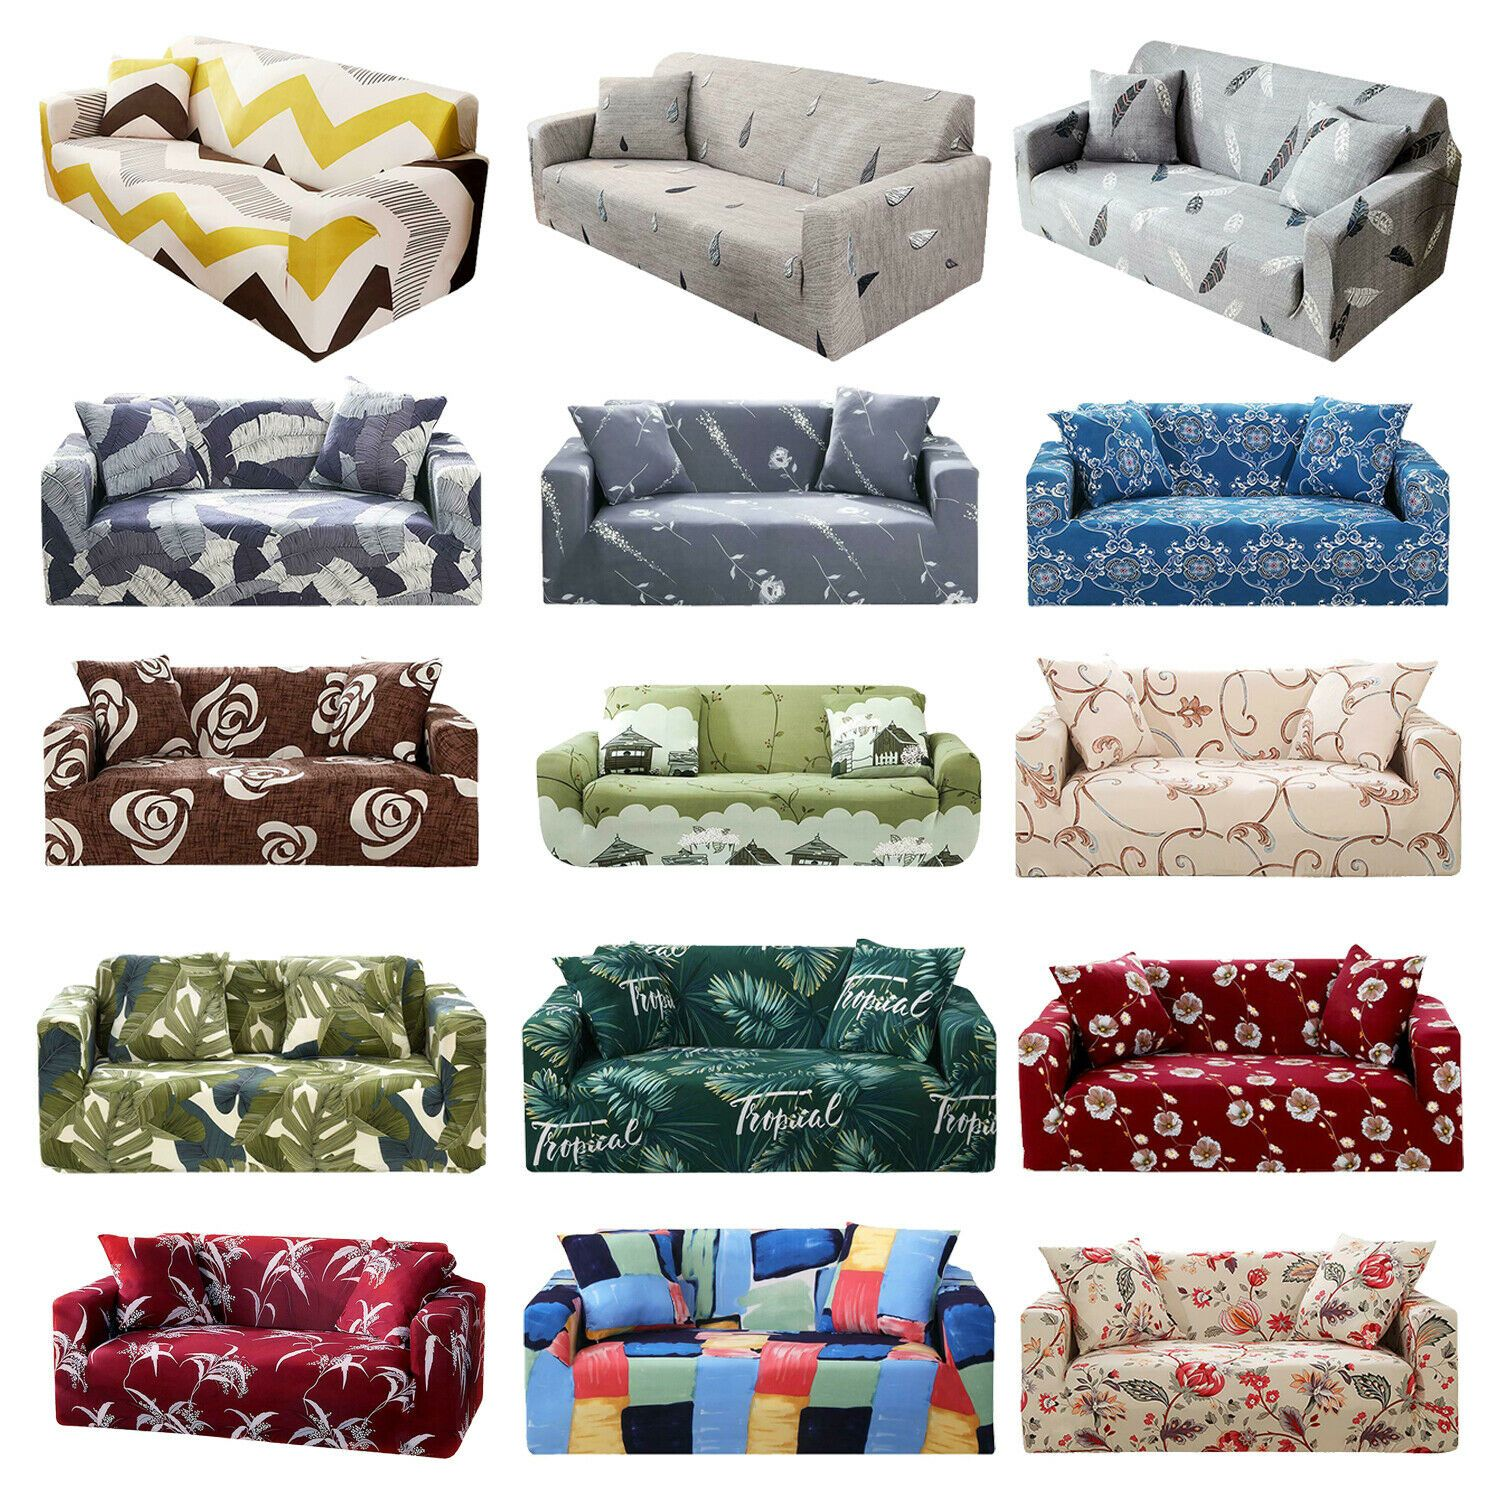 1 2 3 4 Seater Slipcover Stretch Couch Sofa Lounge Cover Recliner Chair Elastic Sofa Slipcover Ideas Of Sofa Slipcov Slipcovered Sofa Slipcovers Sofa Couch